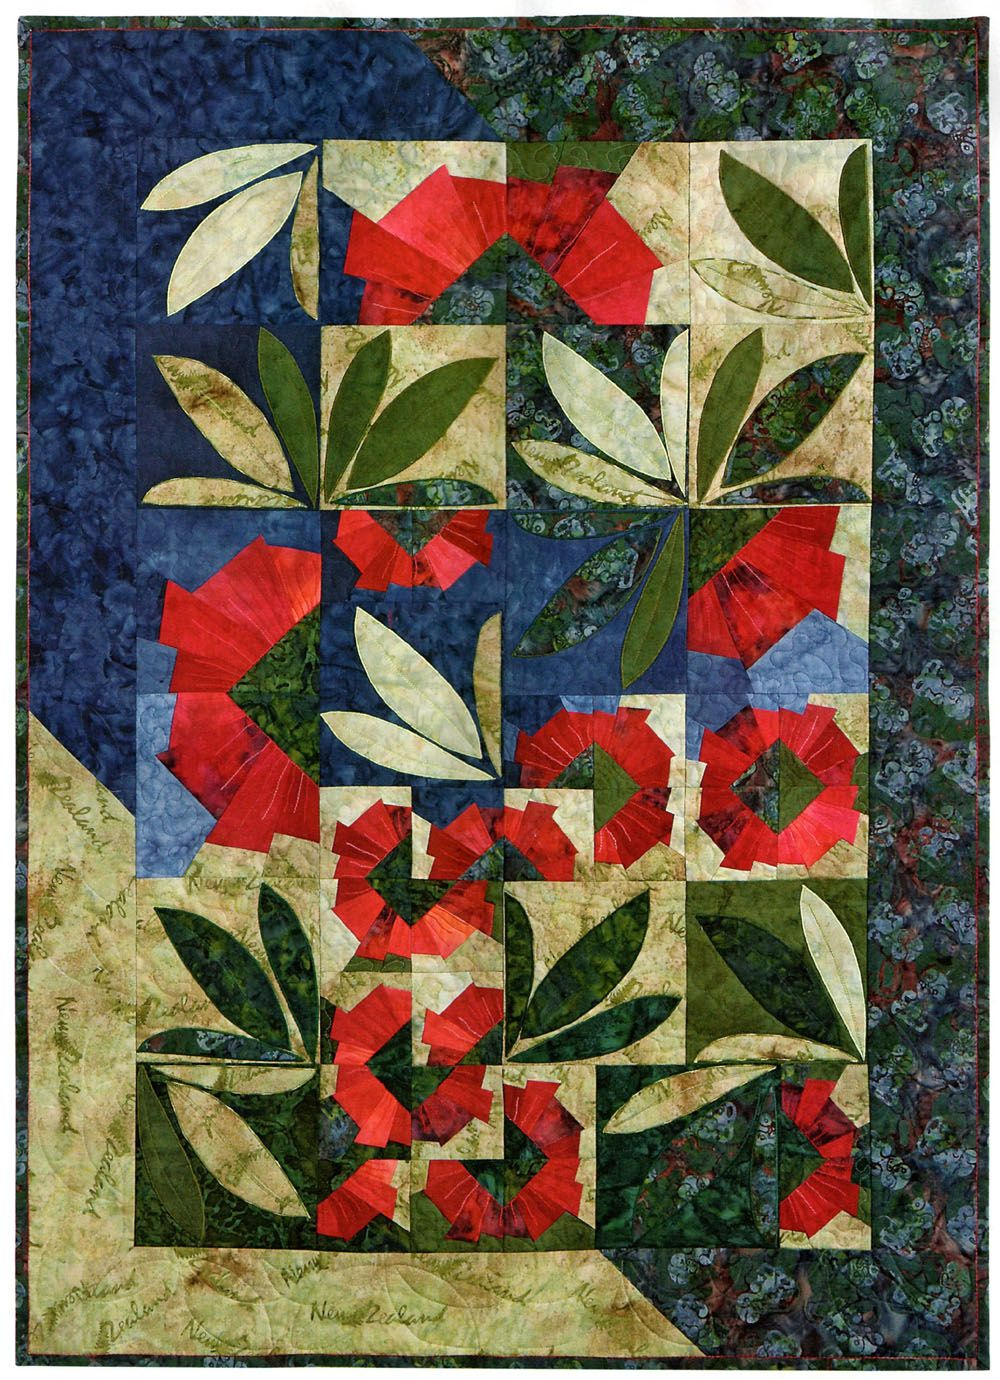 Quilted Wall Hanging Patterns pohutukawa wallhanging pattern - pattern here: http://www